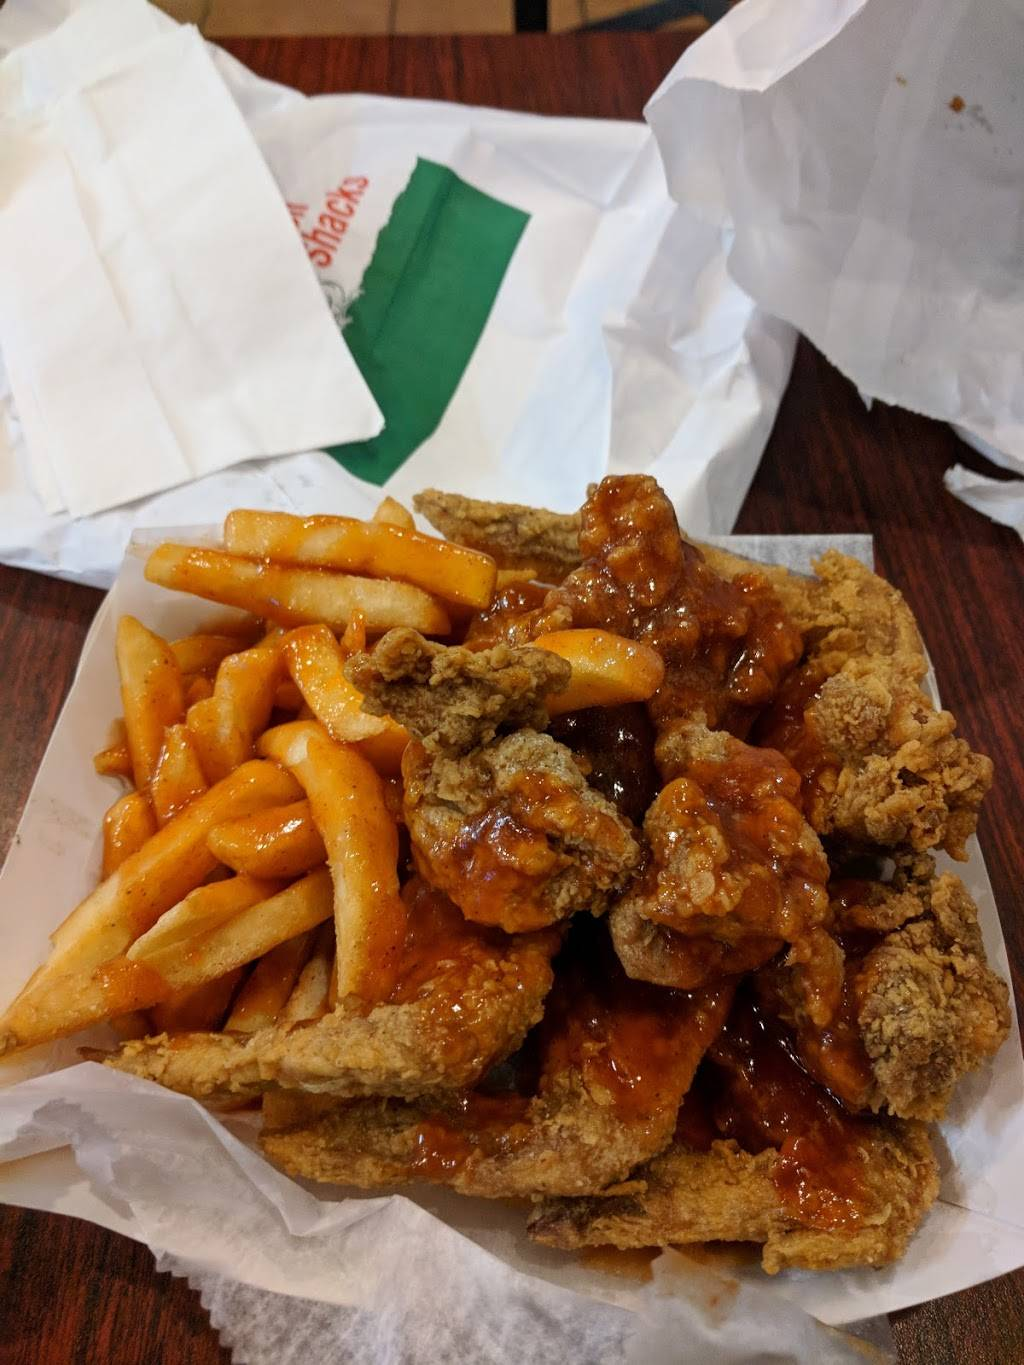 Harolds Chicken   restaurant   4142 W 167th St, Oak Forest, IL 60452, USA   7088930650 OR +1 708-893-0650